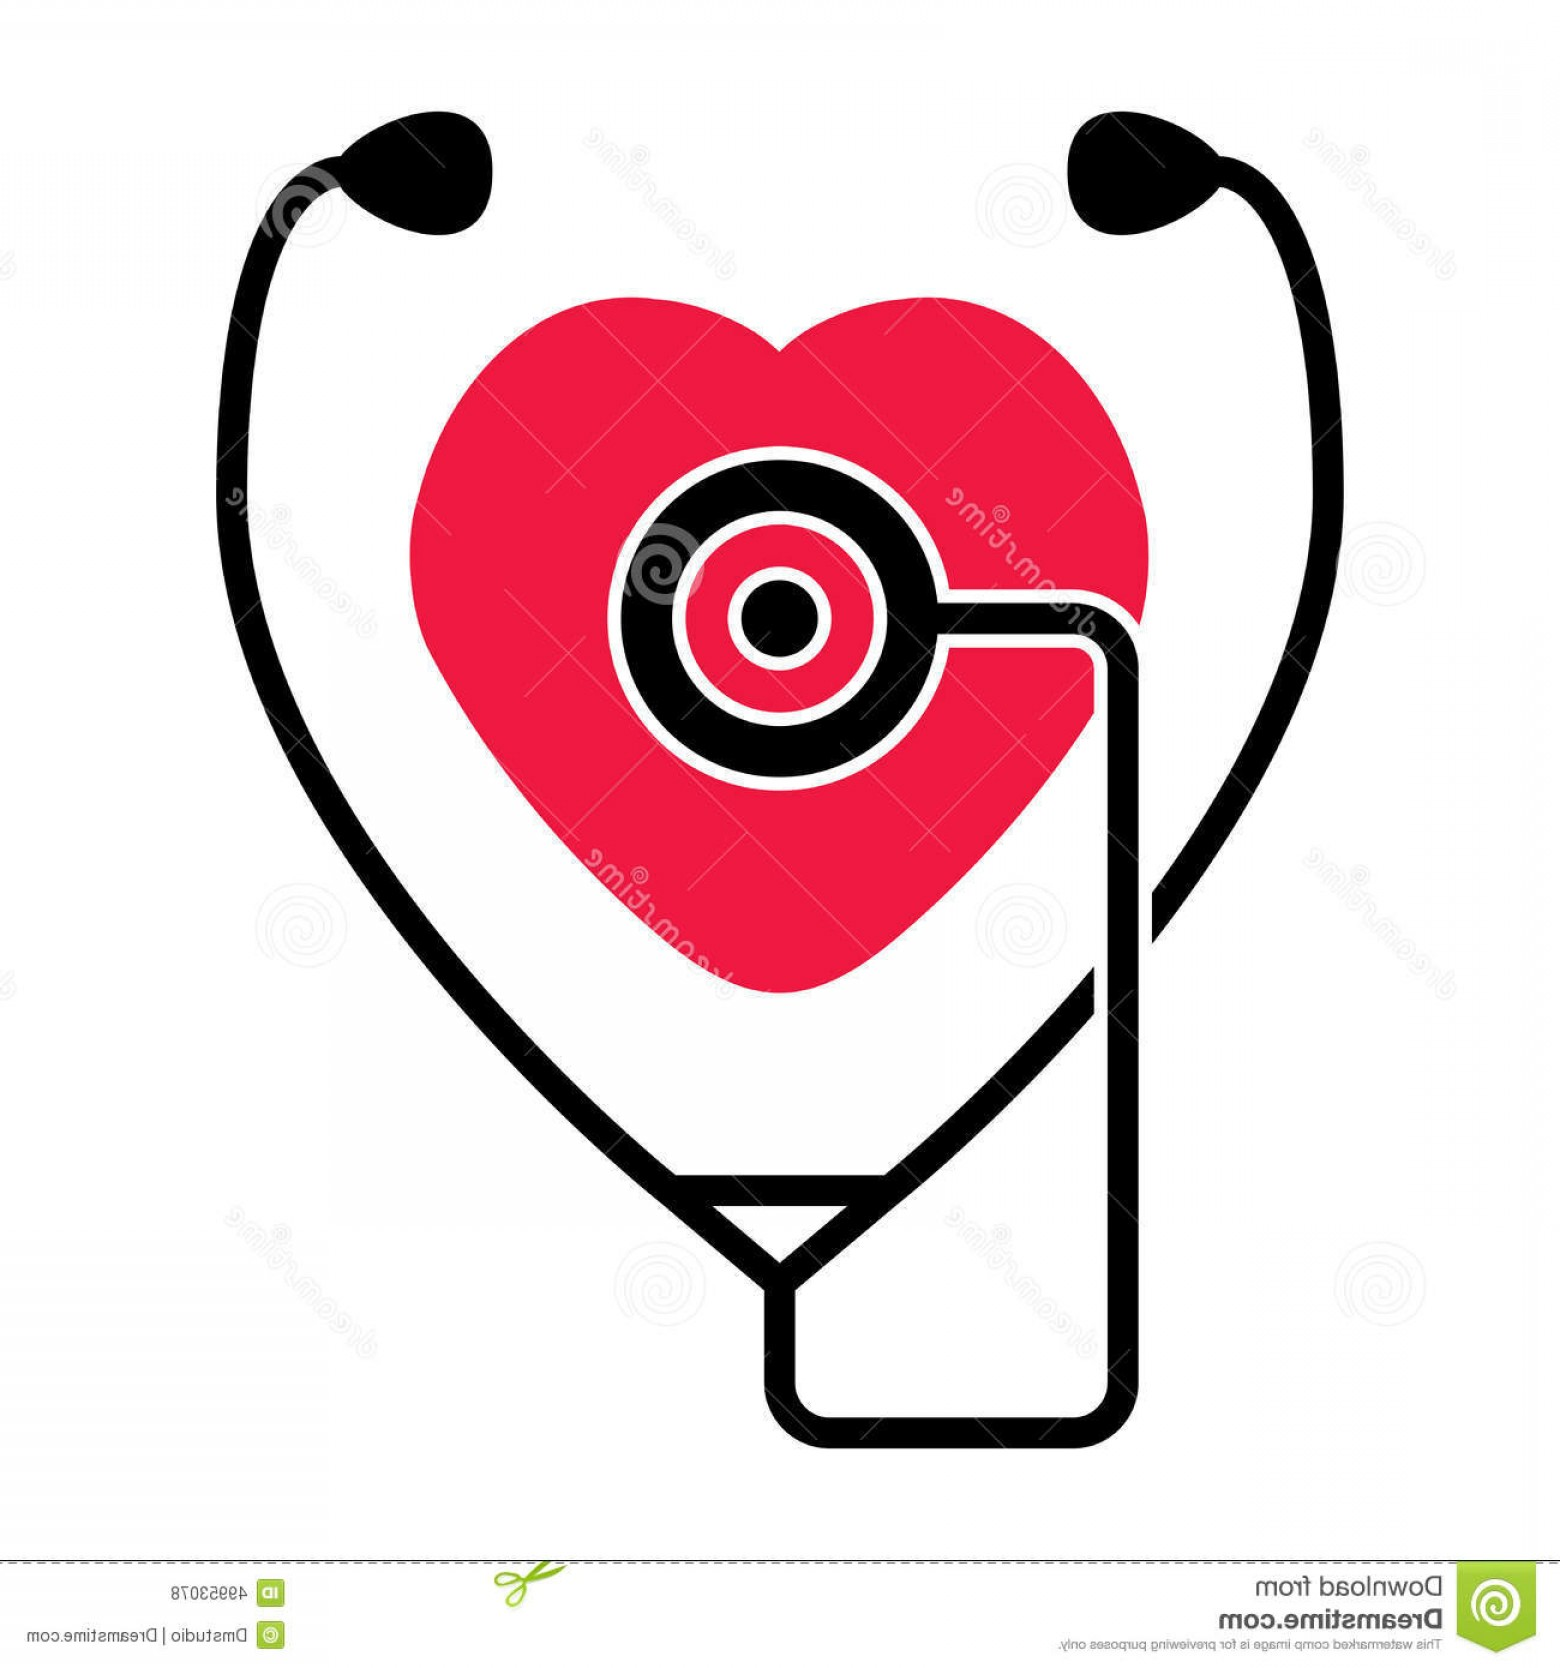 Stethoscope With Heart Vector Art: Stock Illustration Heart Stethoscope Symbol Medical Check Health Heartbeat Image